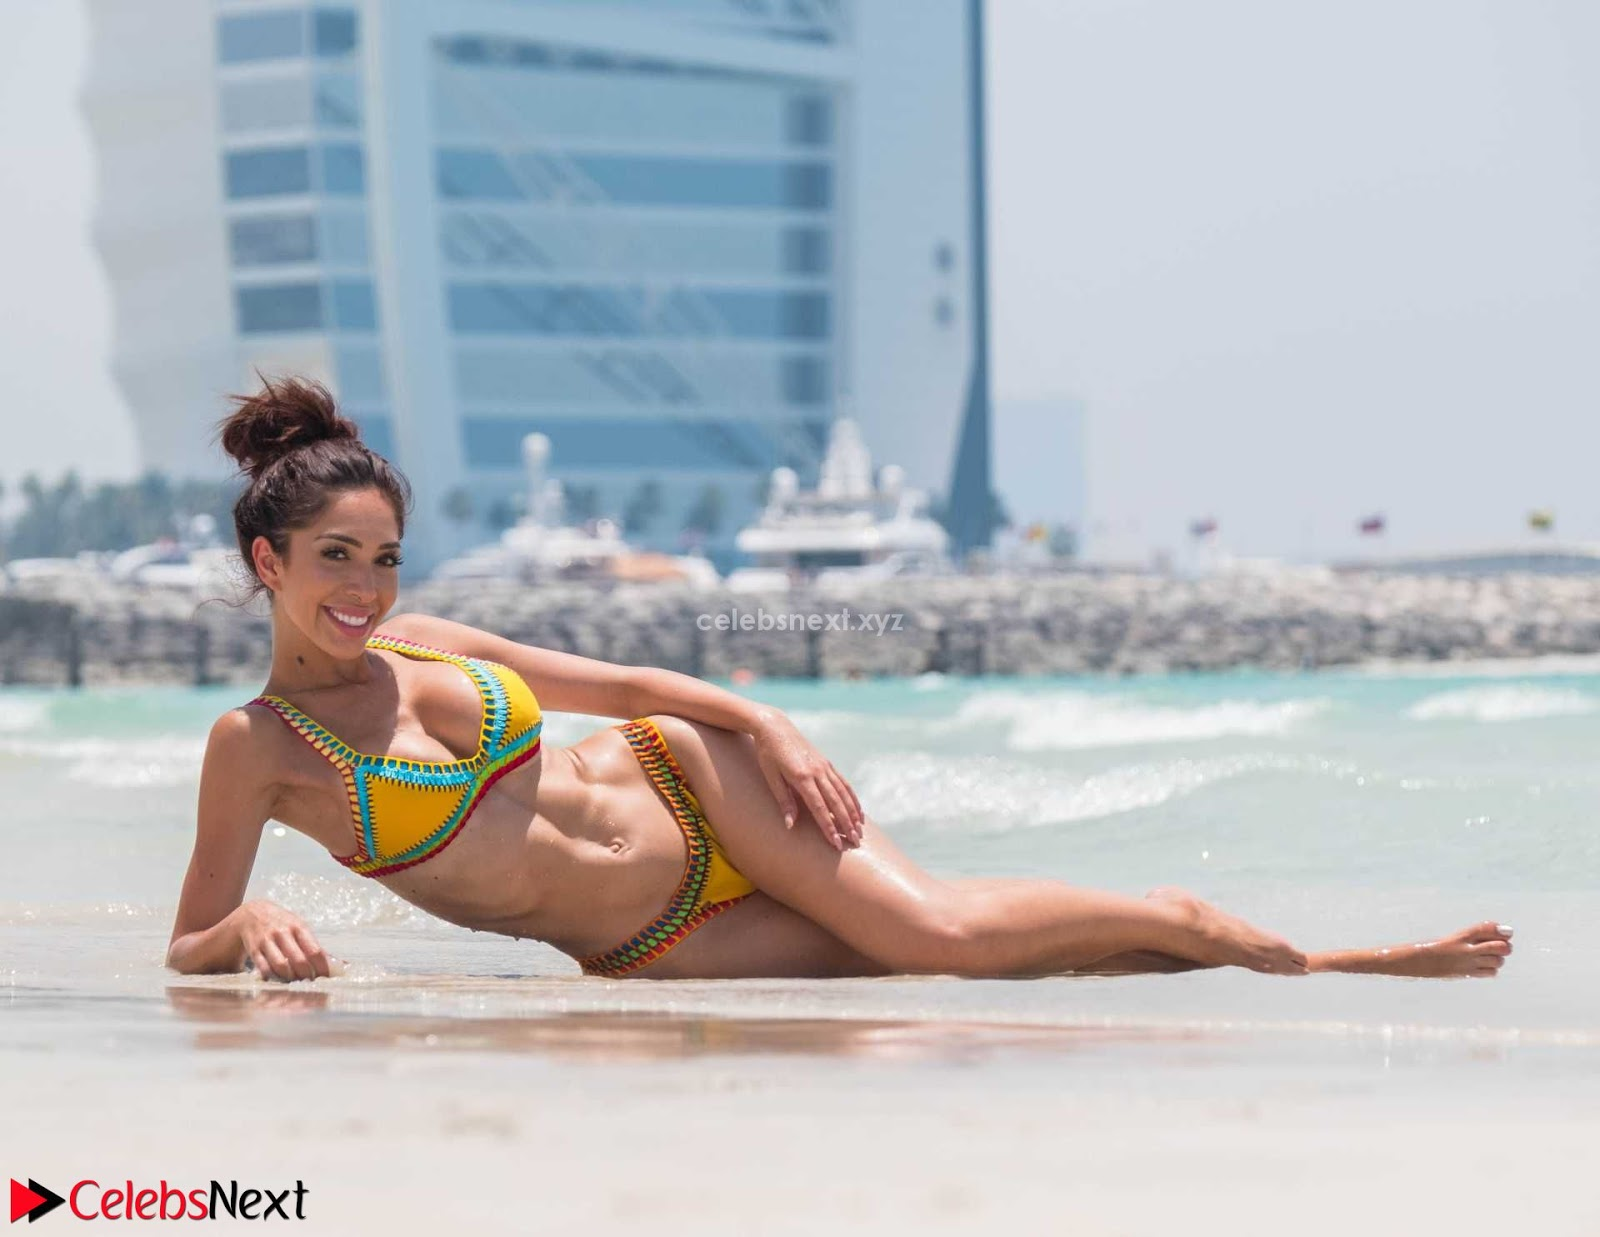 Farrah Abraham in Bikini on a Beach in Dubai Sexy Ass Hot Cleavages May 2018  ~ CelebsNext.xyz Exclusive Celebrity Pics